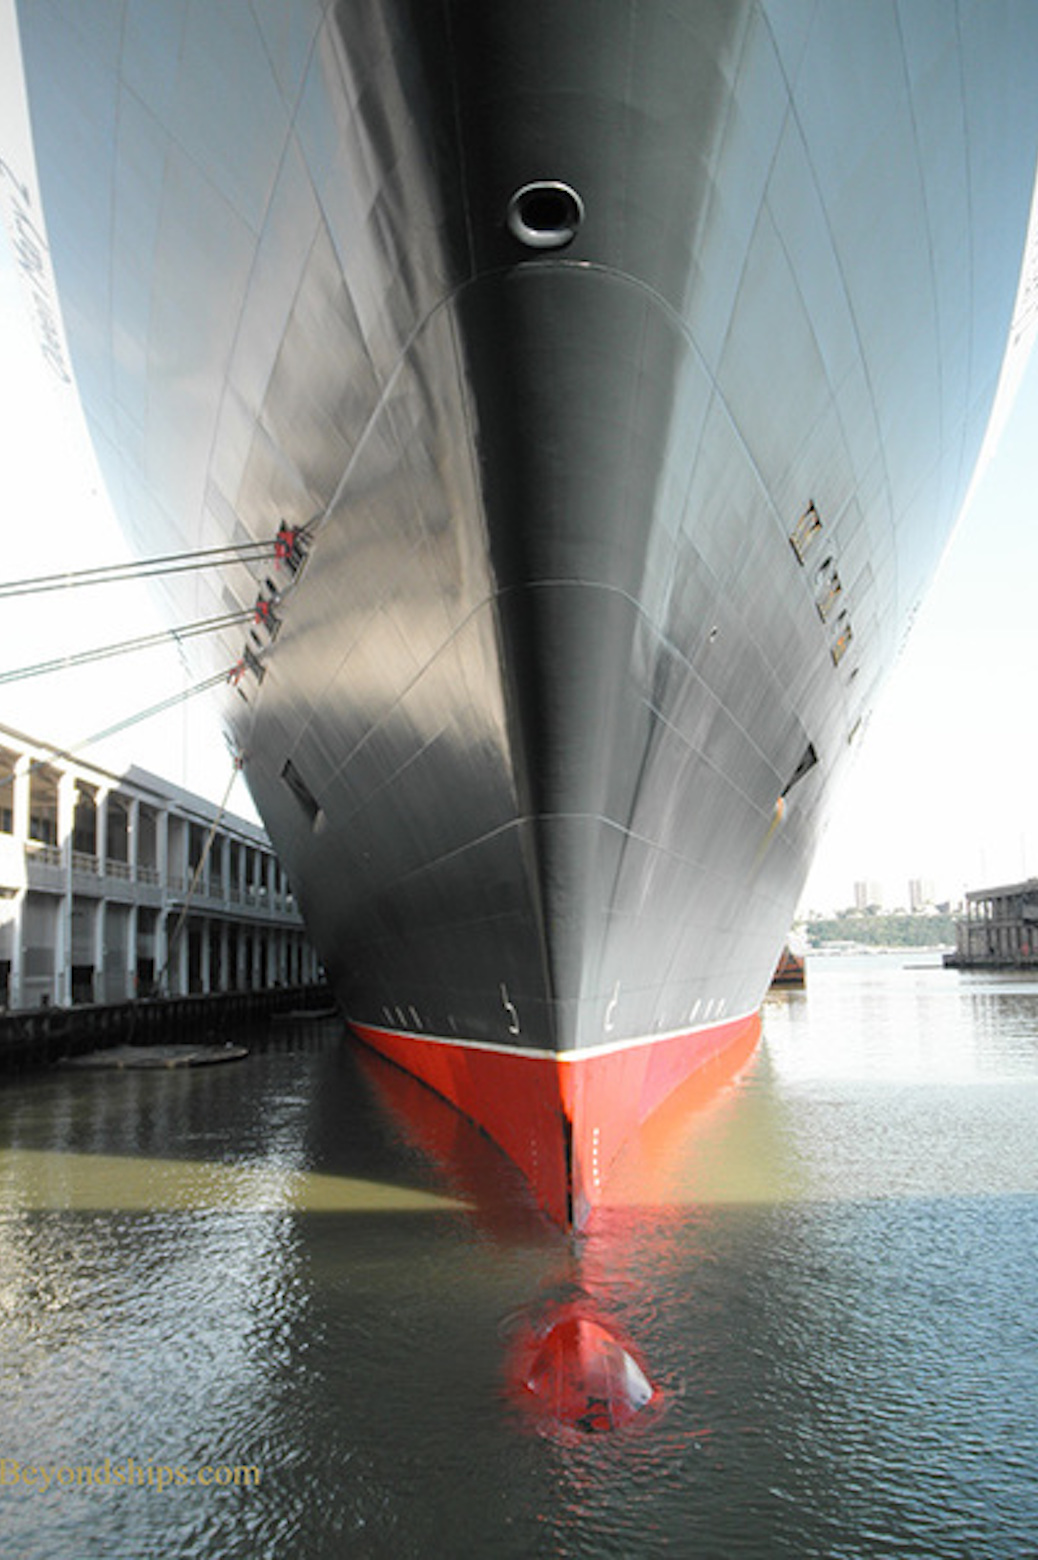 The famous Queen Mary 2 in the water with the bulbous bow visible